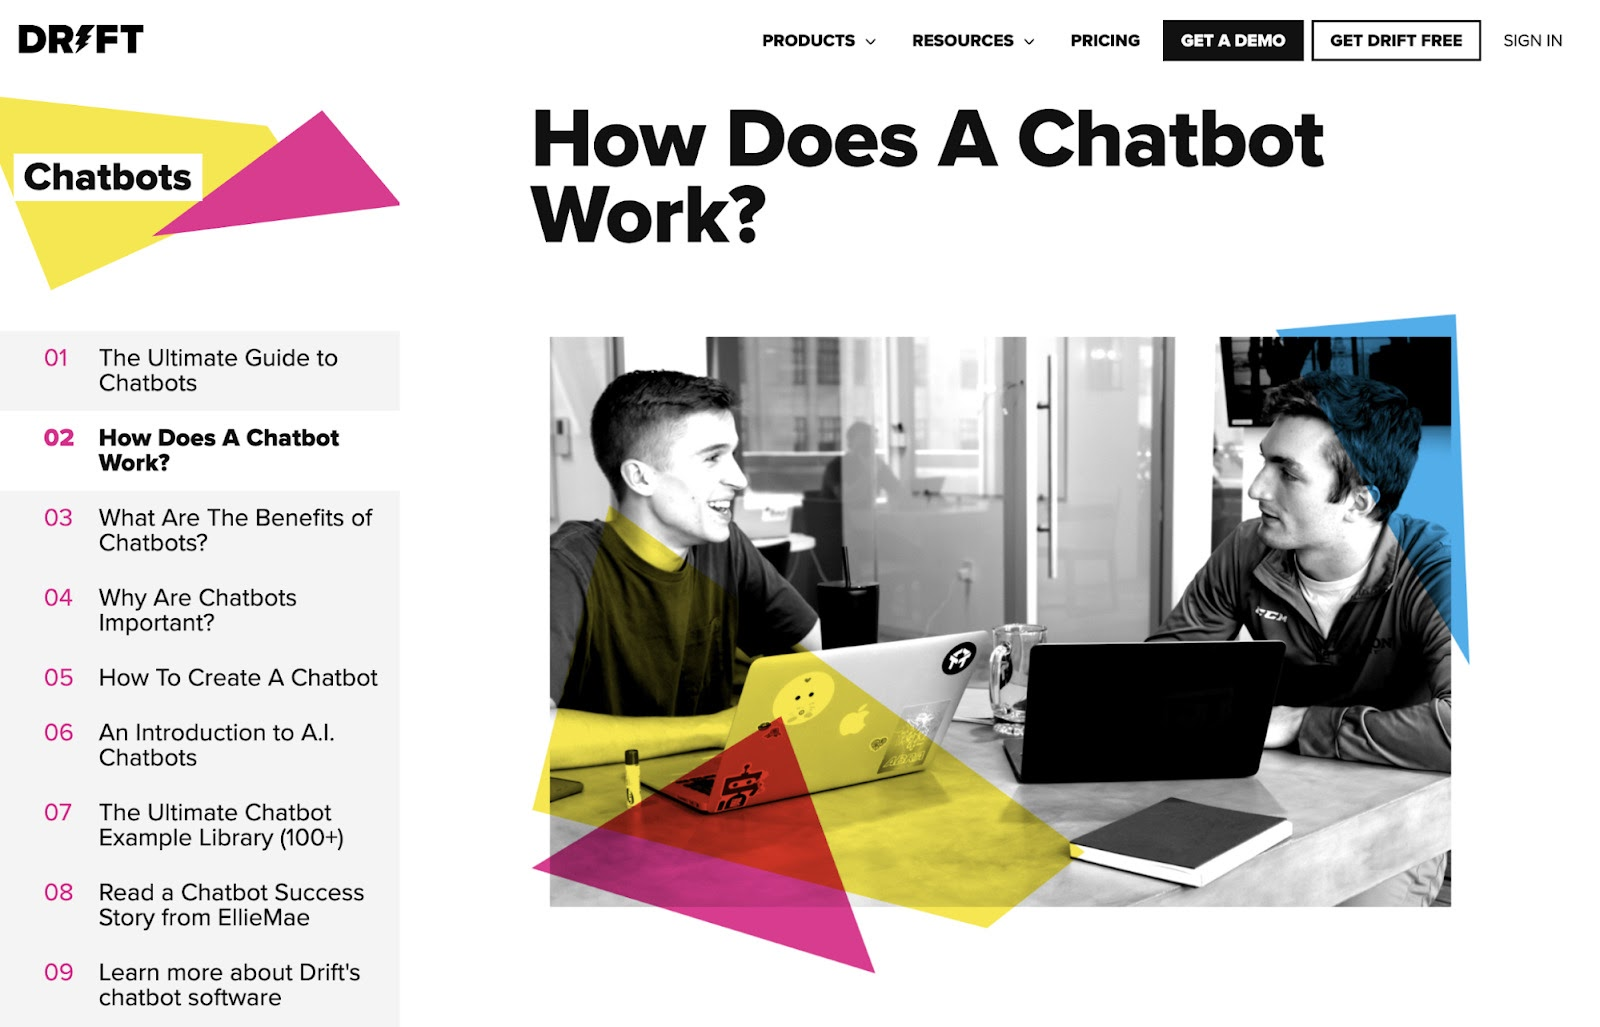 draft how does a chatbot work subpage